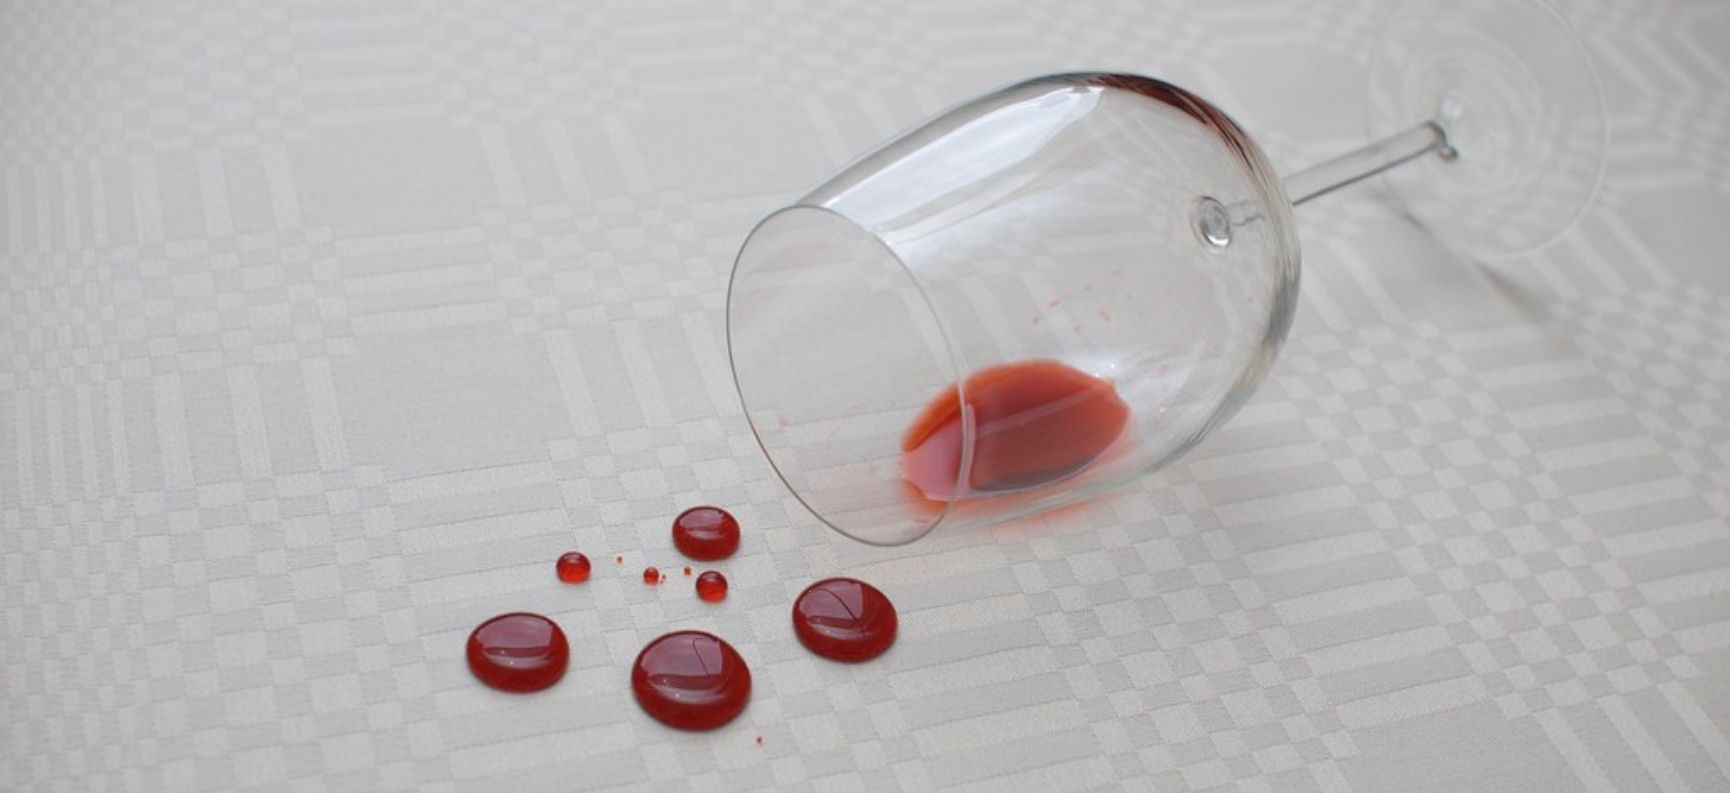 A wine glass on its side, with drops of spilled red wine on a white tablecloth